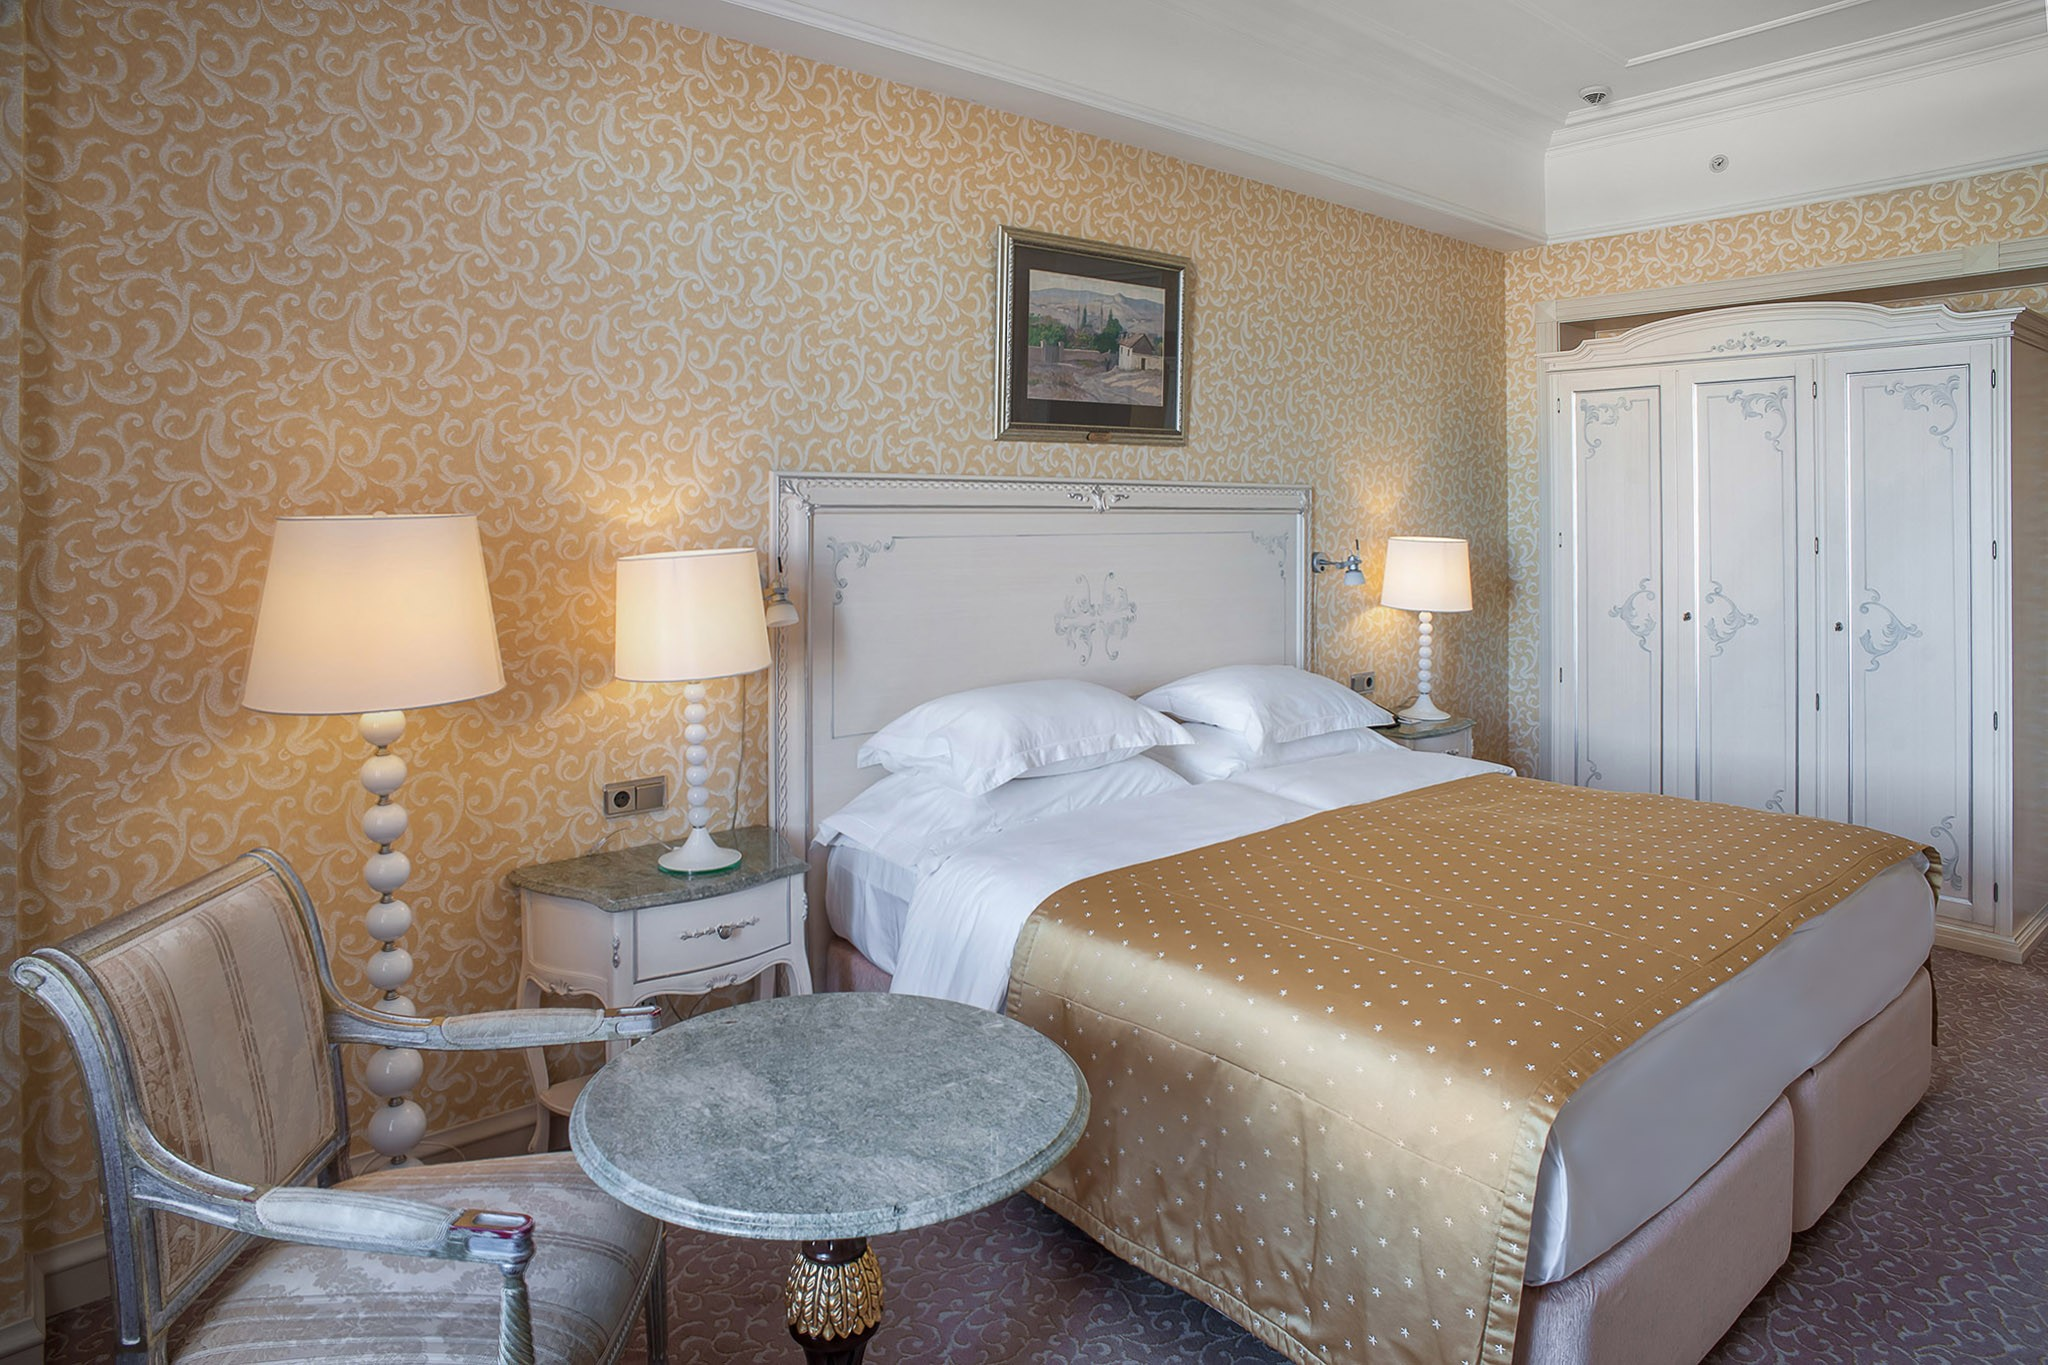 Hotel. The rooms. Interior photography